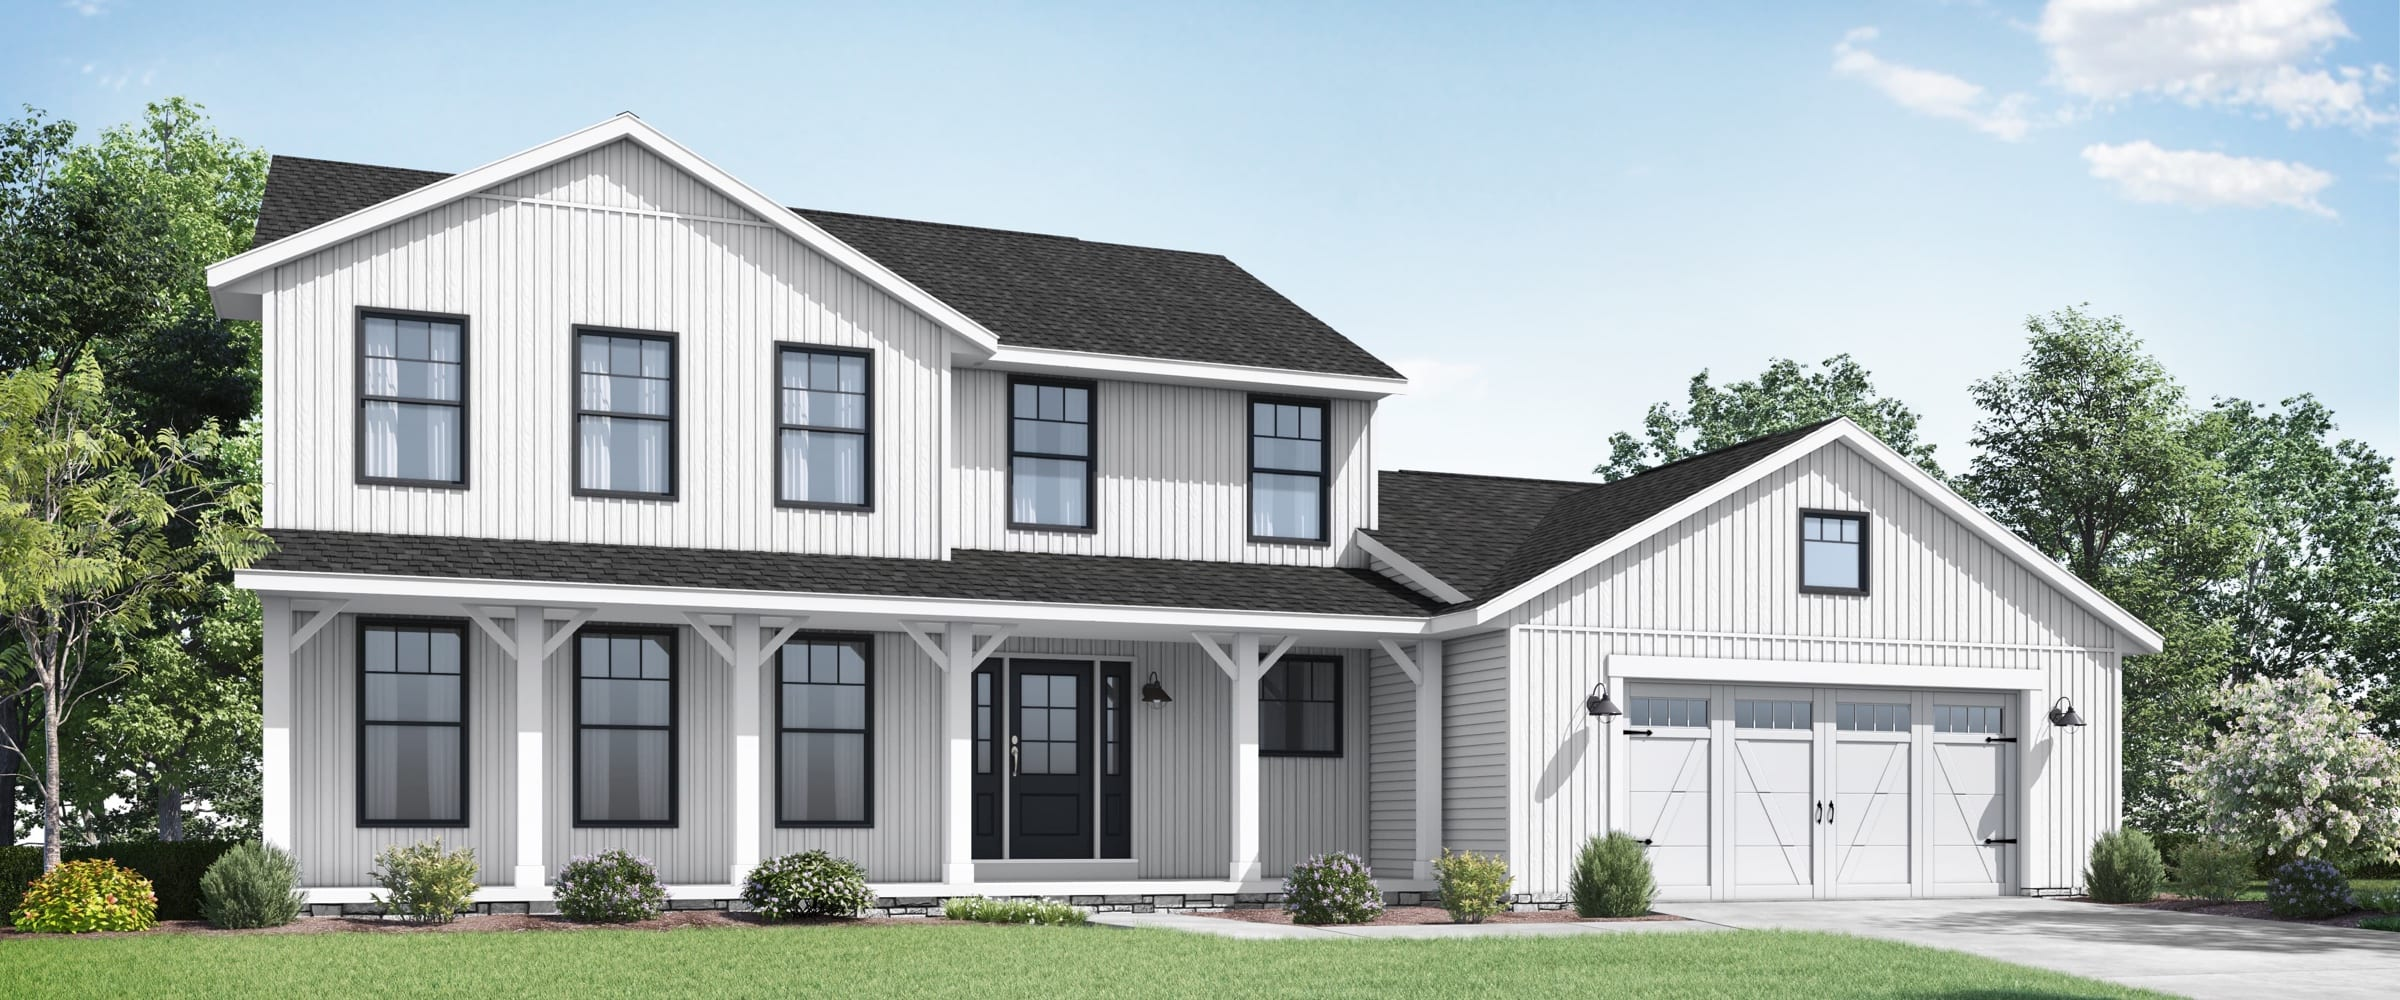 Expert Custom Home Builders in MI, OH, PA & WV - Wayne Homes on house insurance pricing, house ice, house enter, house cat, house set, house big, house port, house arc, house ant, house font, house mat, house area,